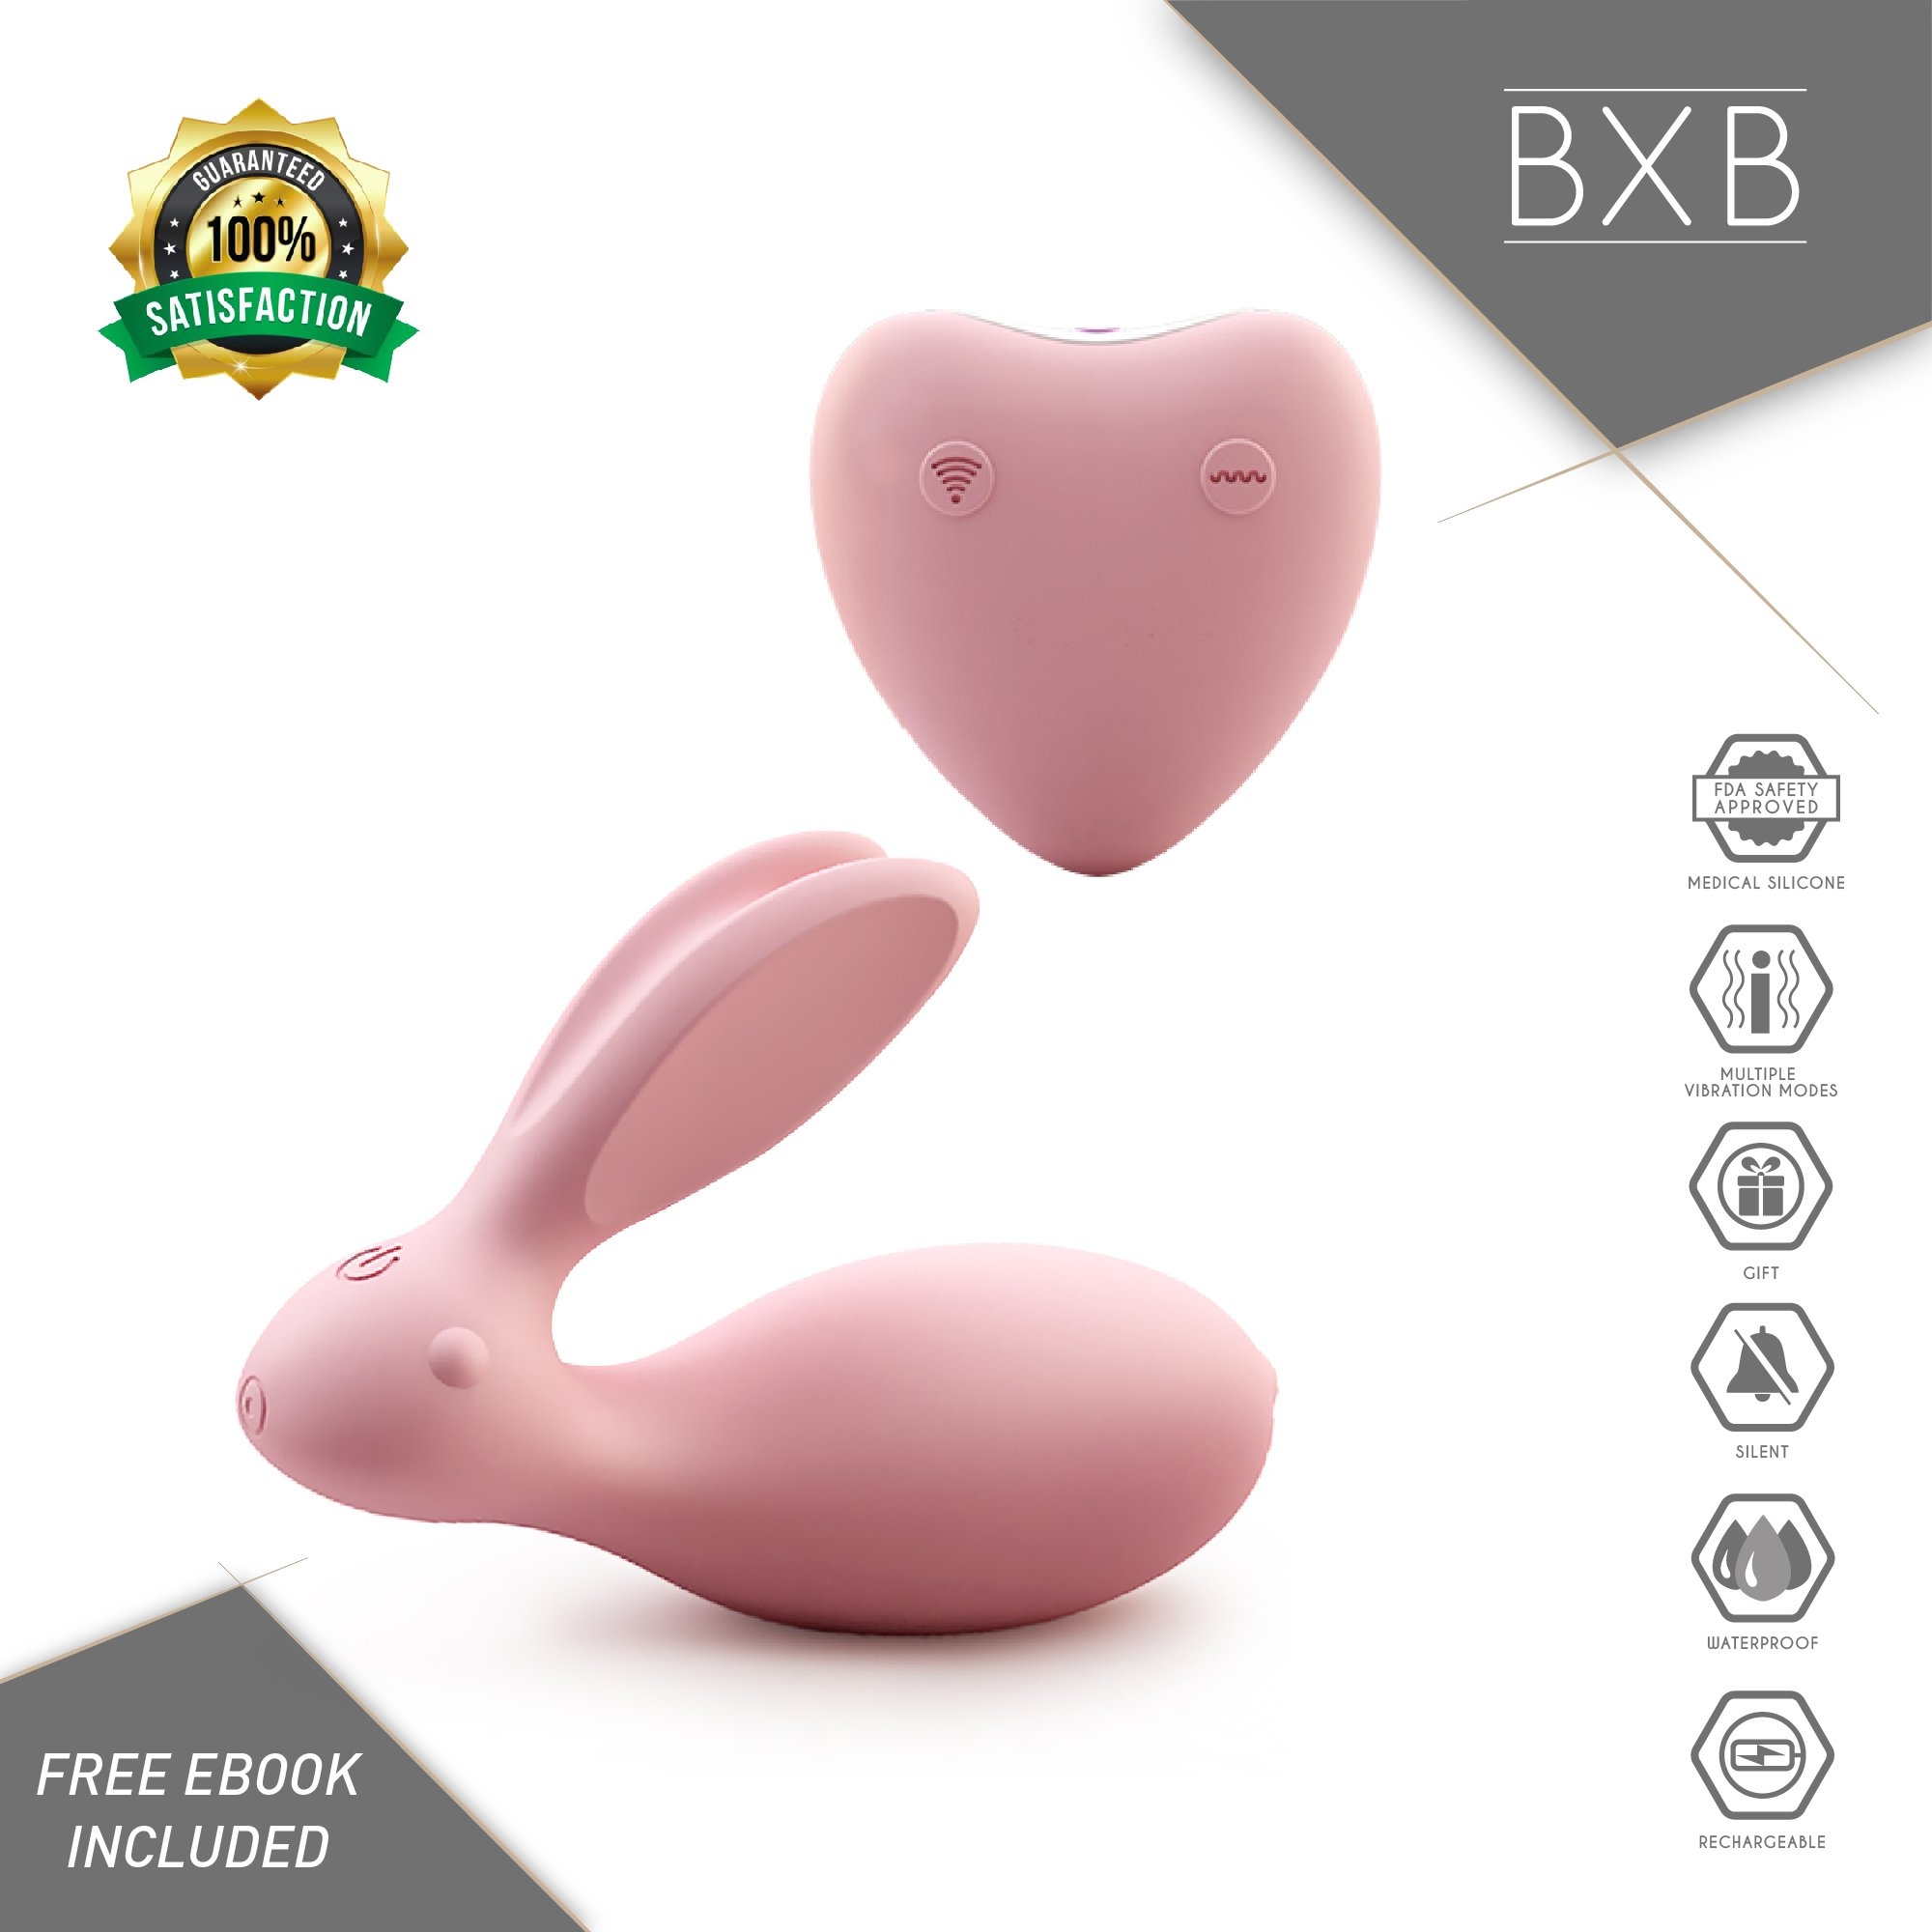 Discreet, Rabbit-Shaped Massager by BXB | Powerful | Cordless | Compact | Therapeutic | Recovery | Muscle Aches | Travel Gift | Hypoallergenic | Silicone | USB | Wireless | Stress Away